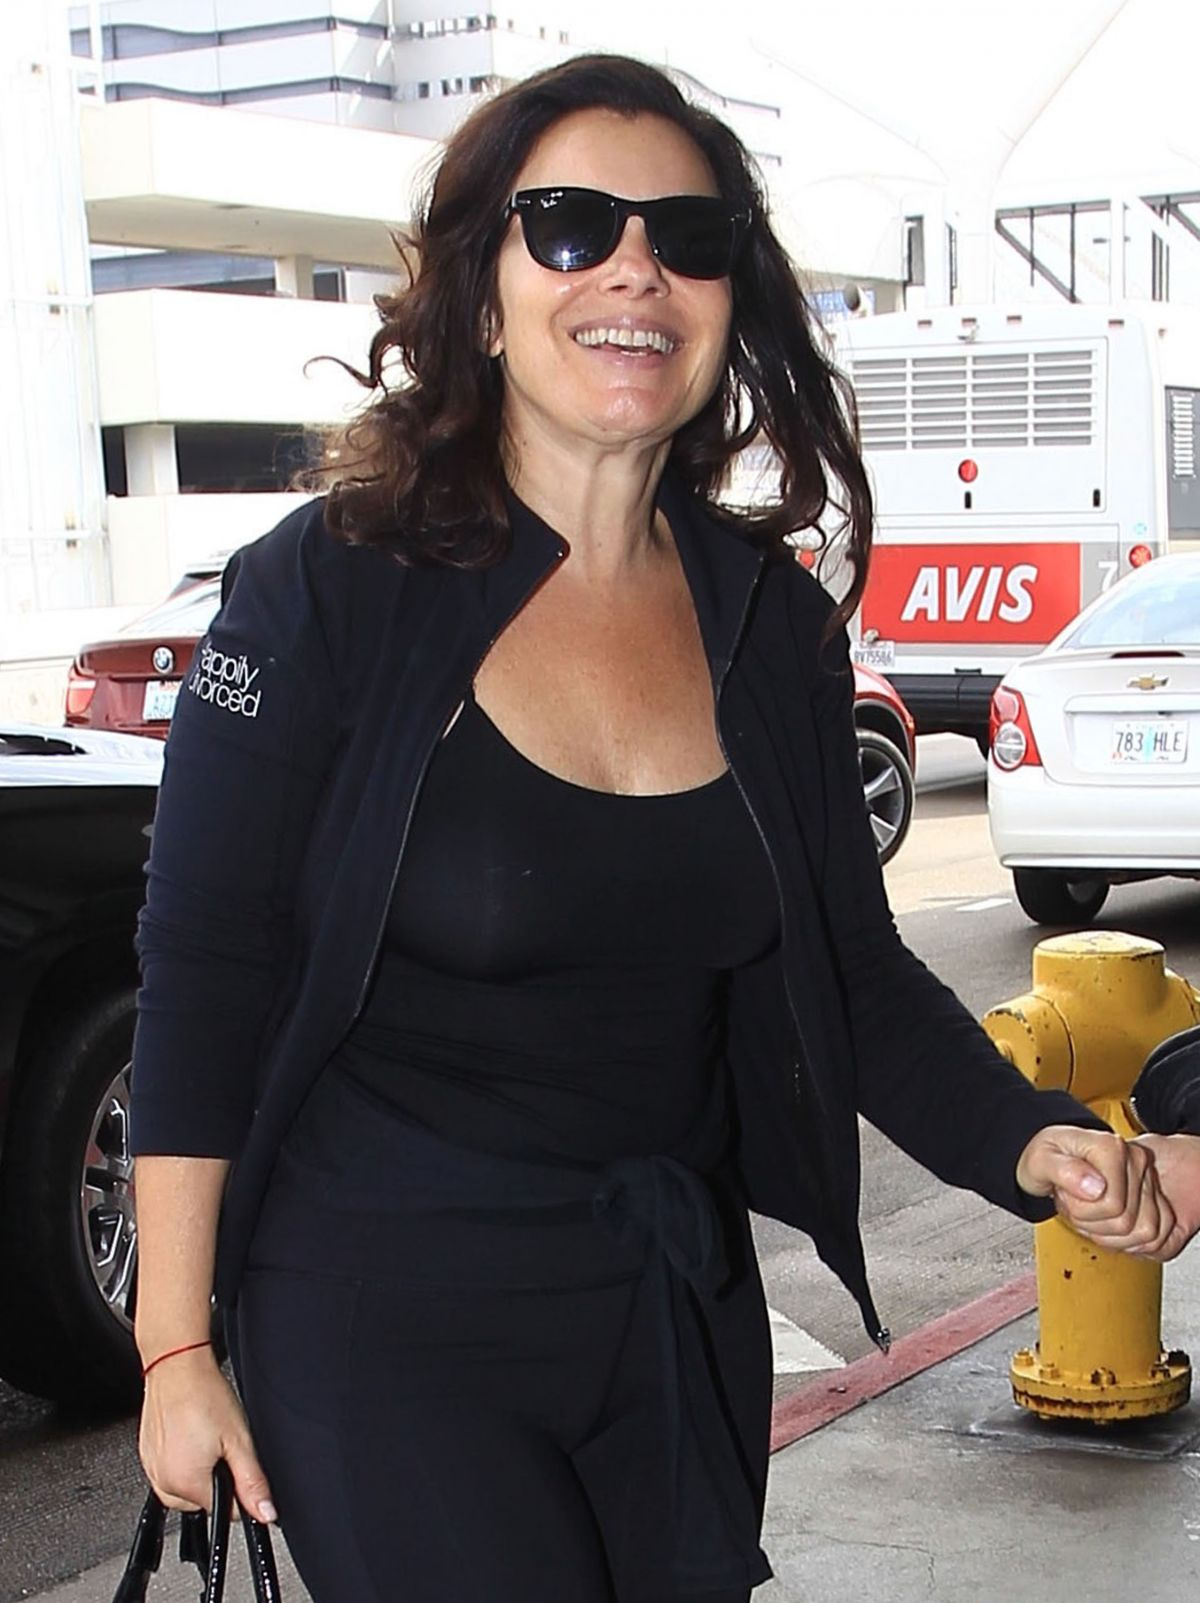 FRAN DRESCHER at LAX Airport in Los Angeles 09/19/2016